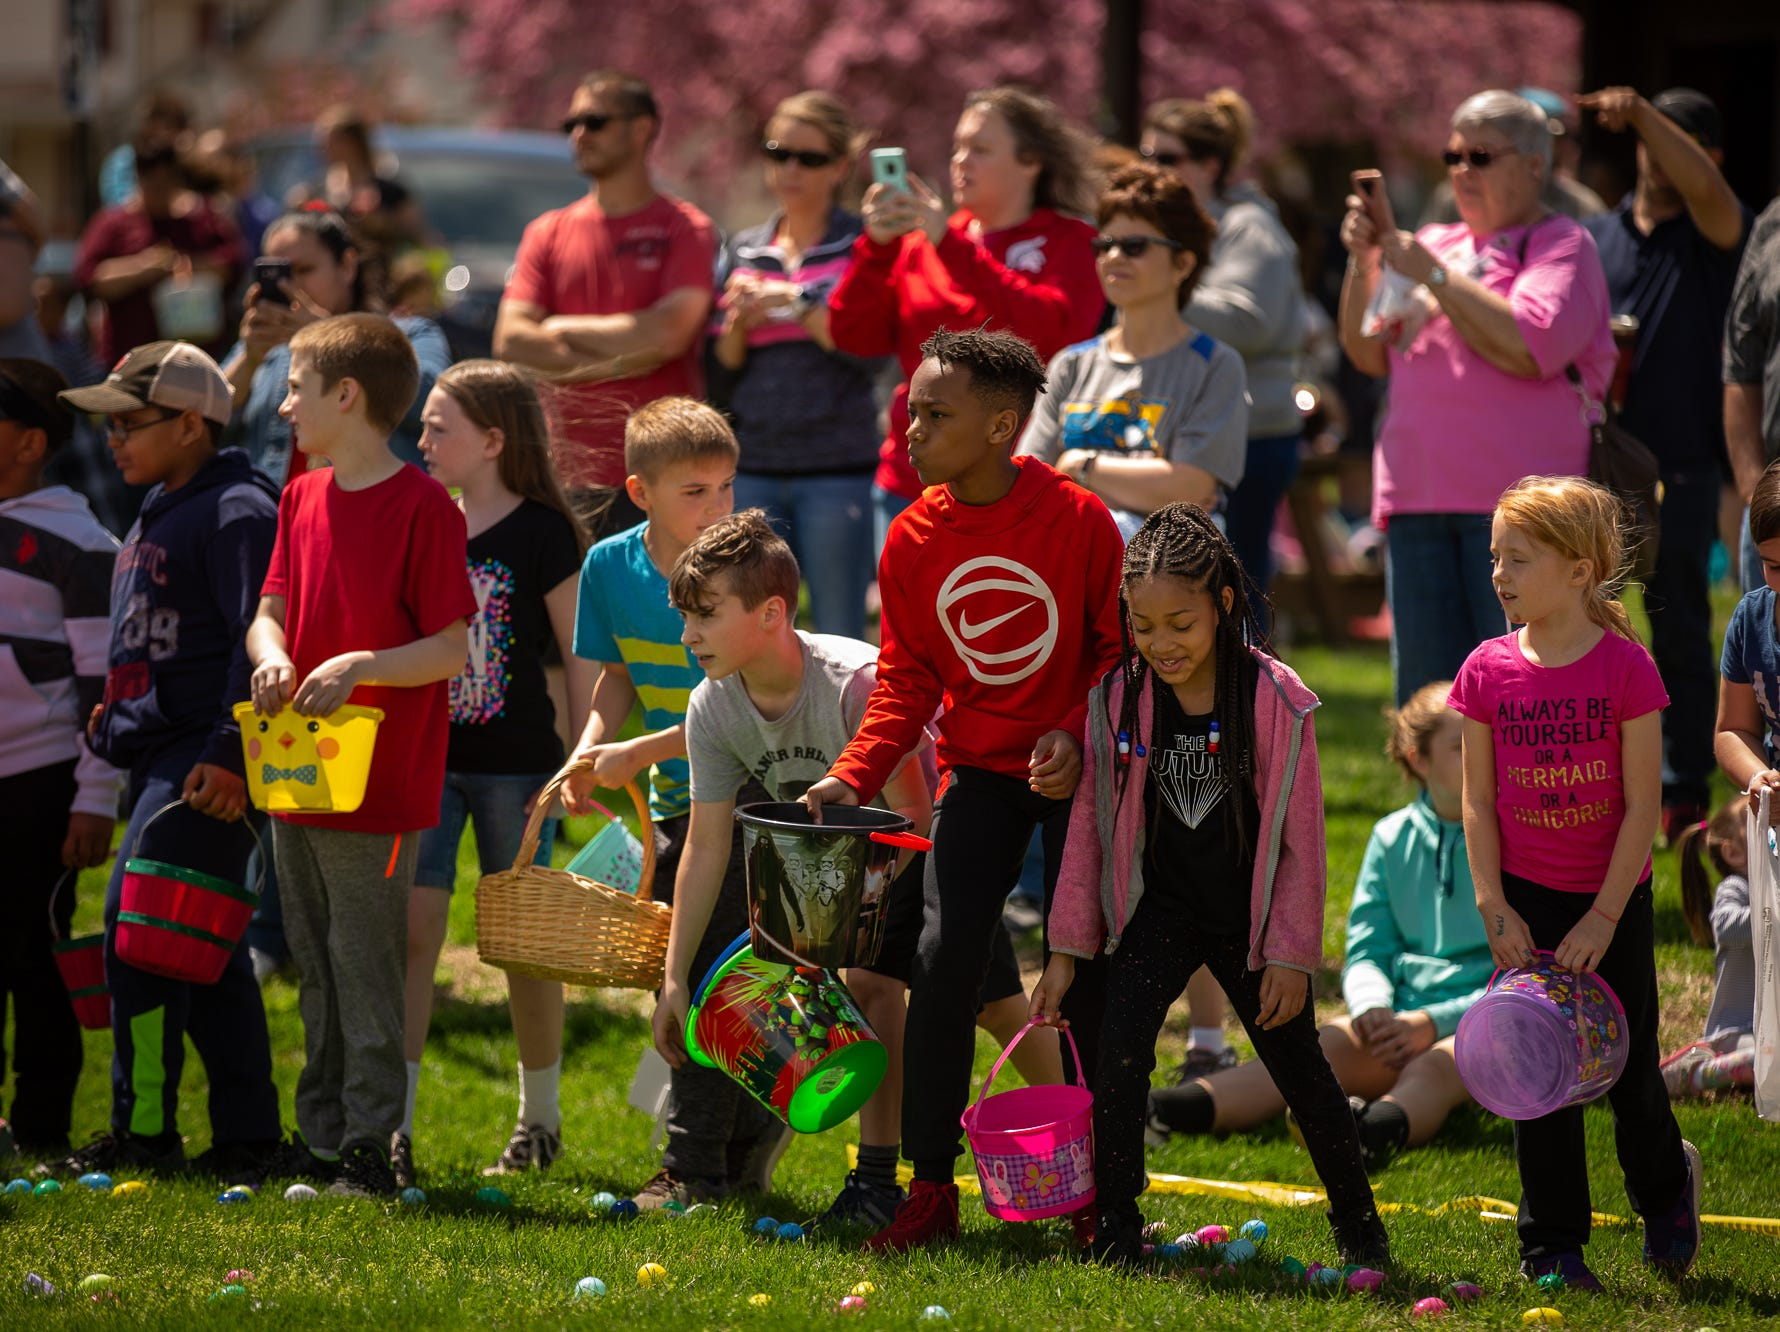 Kids wait to collect Easter eggs during the 12th annual Hanover Community Easter Egg Hunt at Moul Field, Saturday, April 20, 2019, in Hanover.